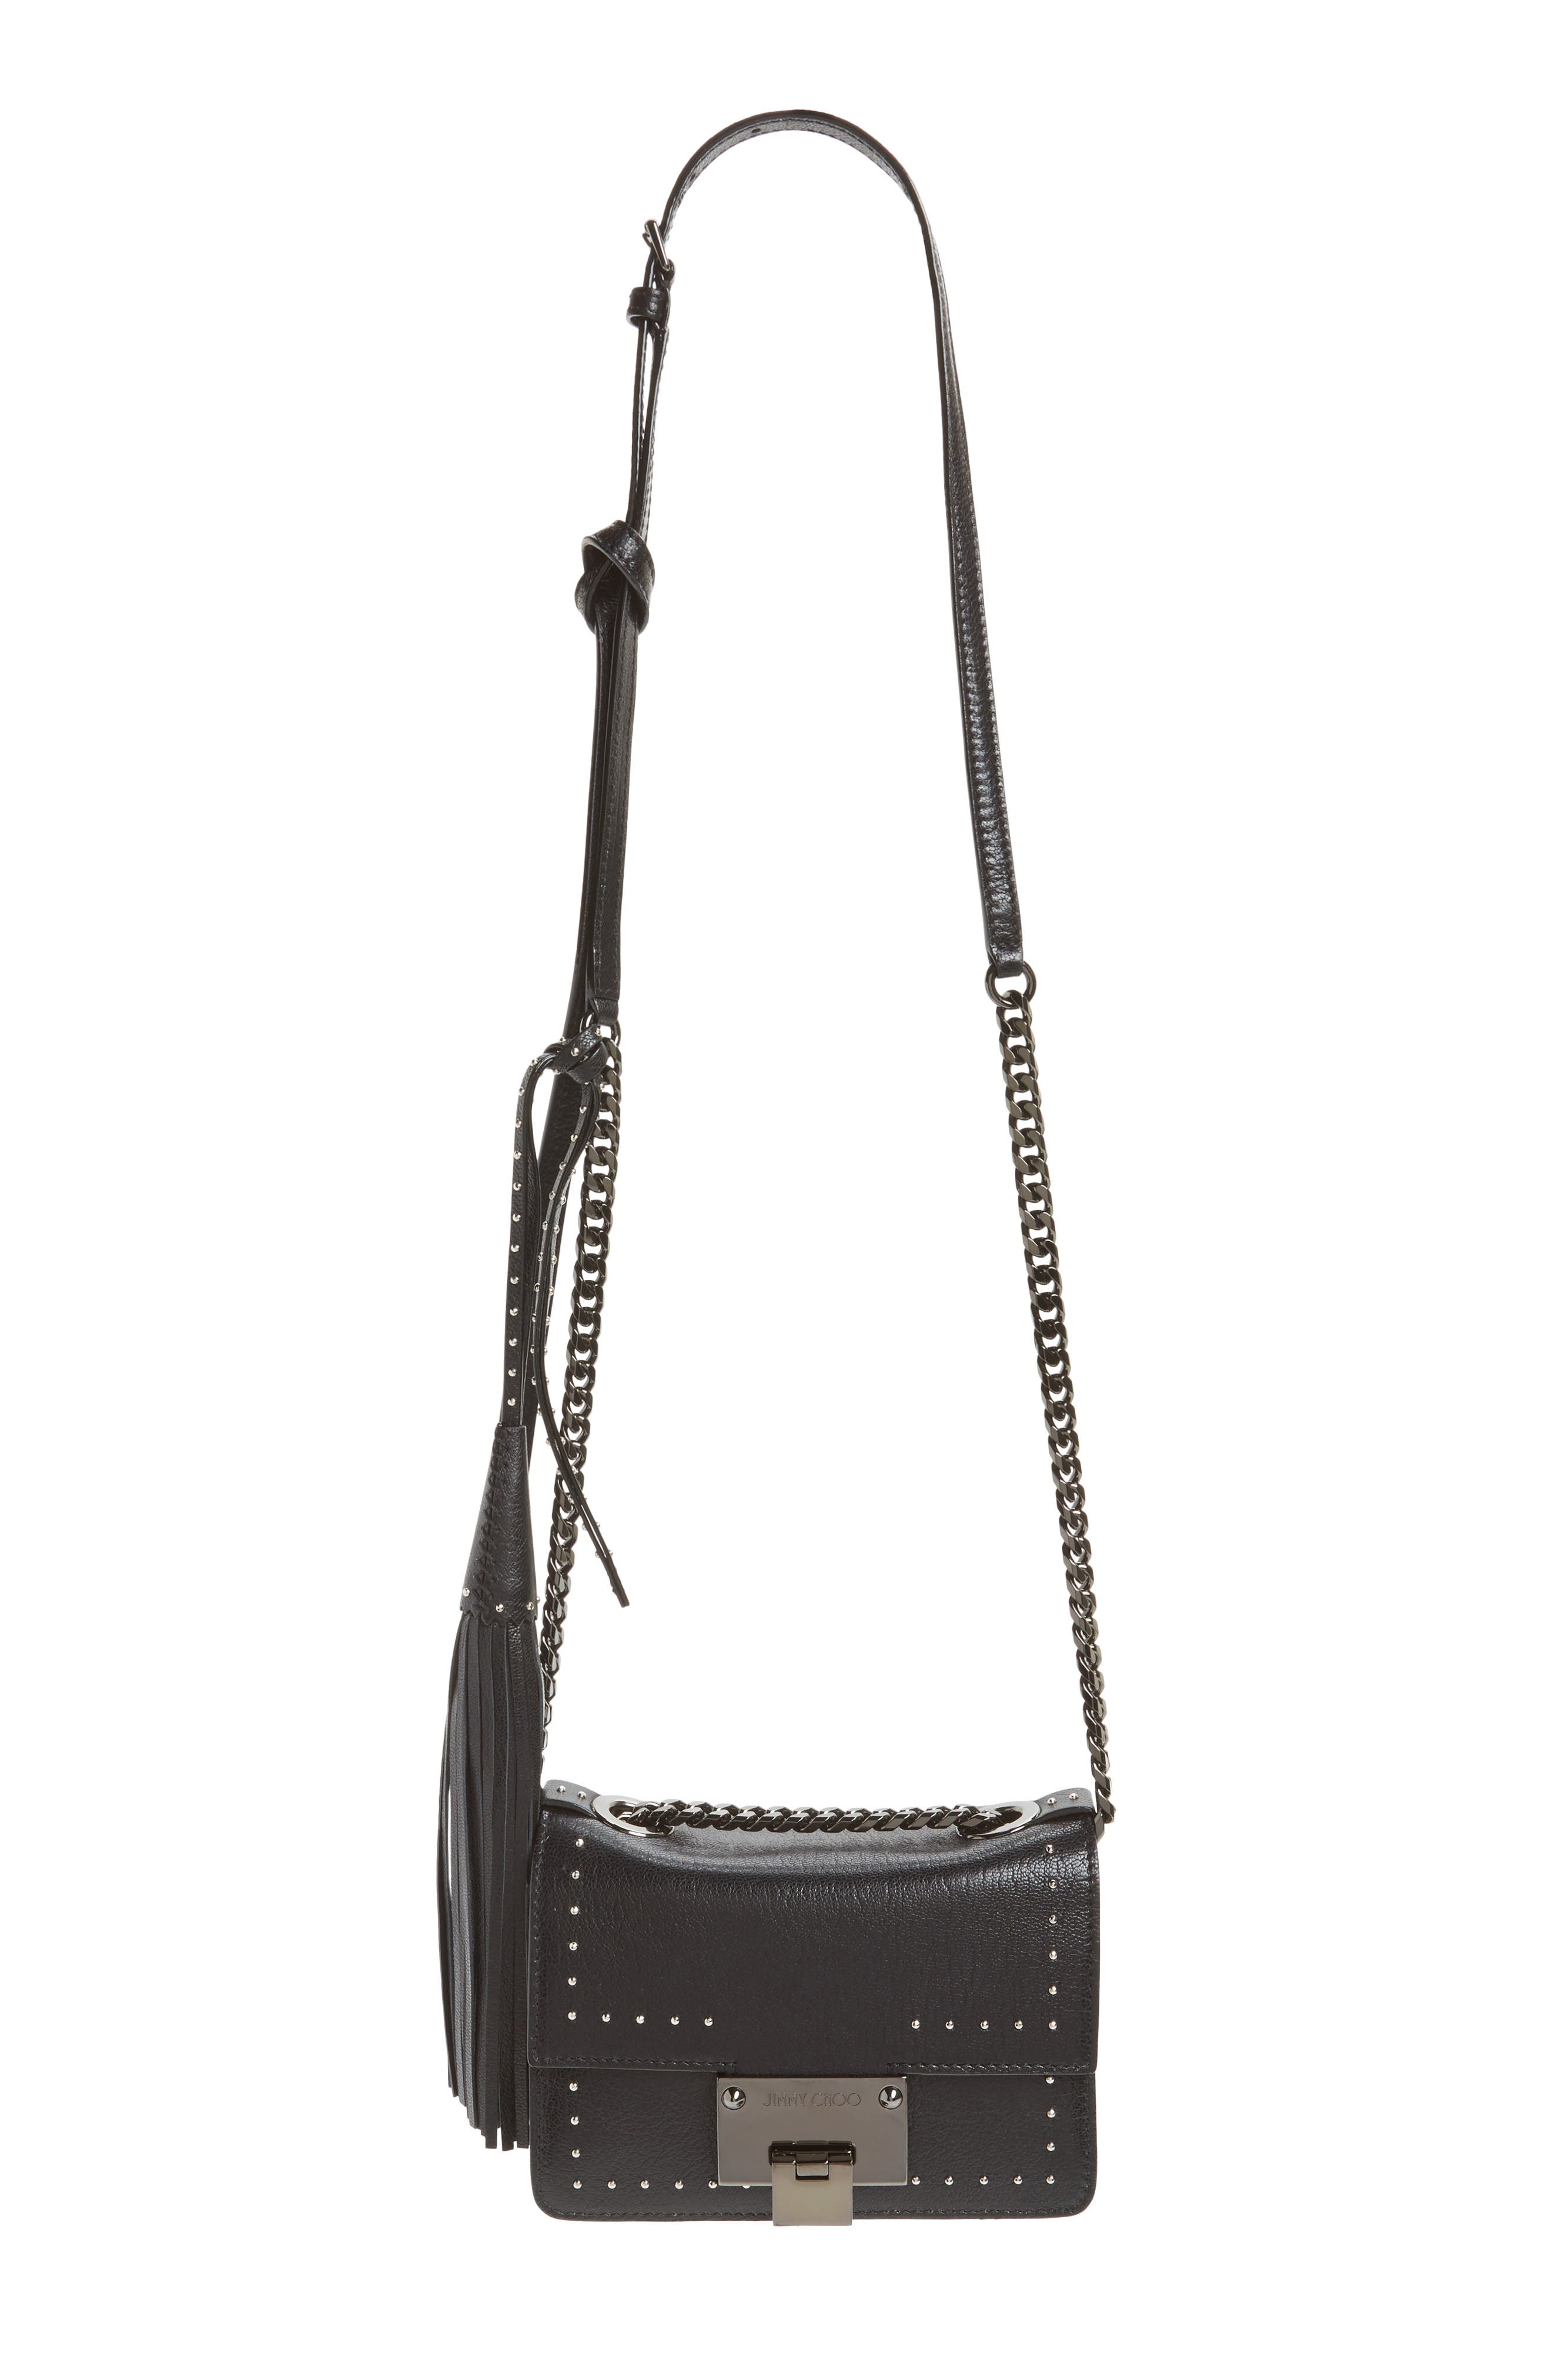 Alternate Image 1 Selected - Jimmy Choo Mini Rebel Studded Leather Shoulder Bag